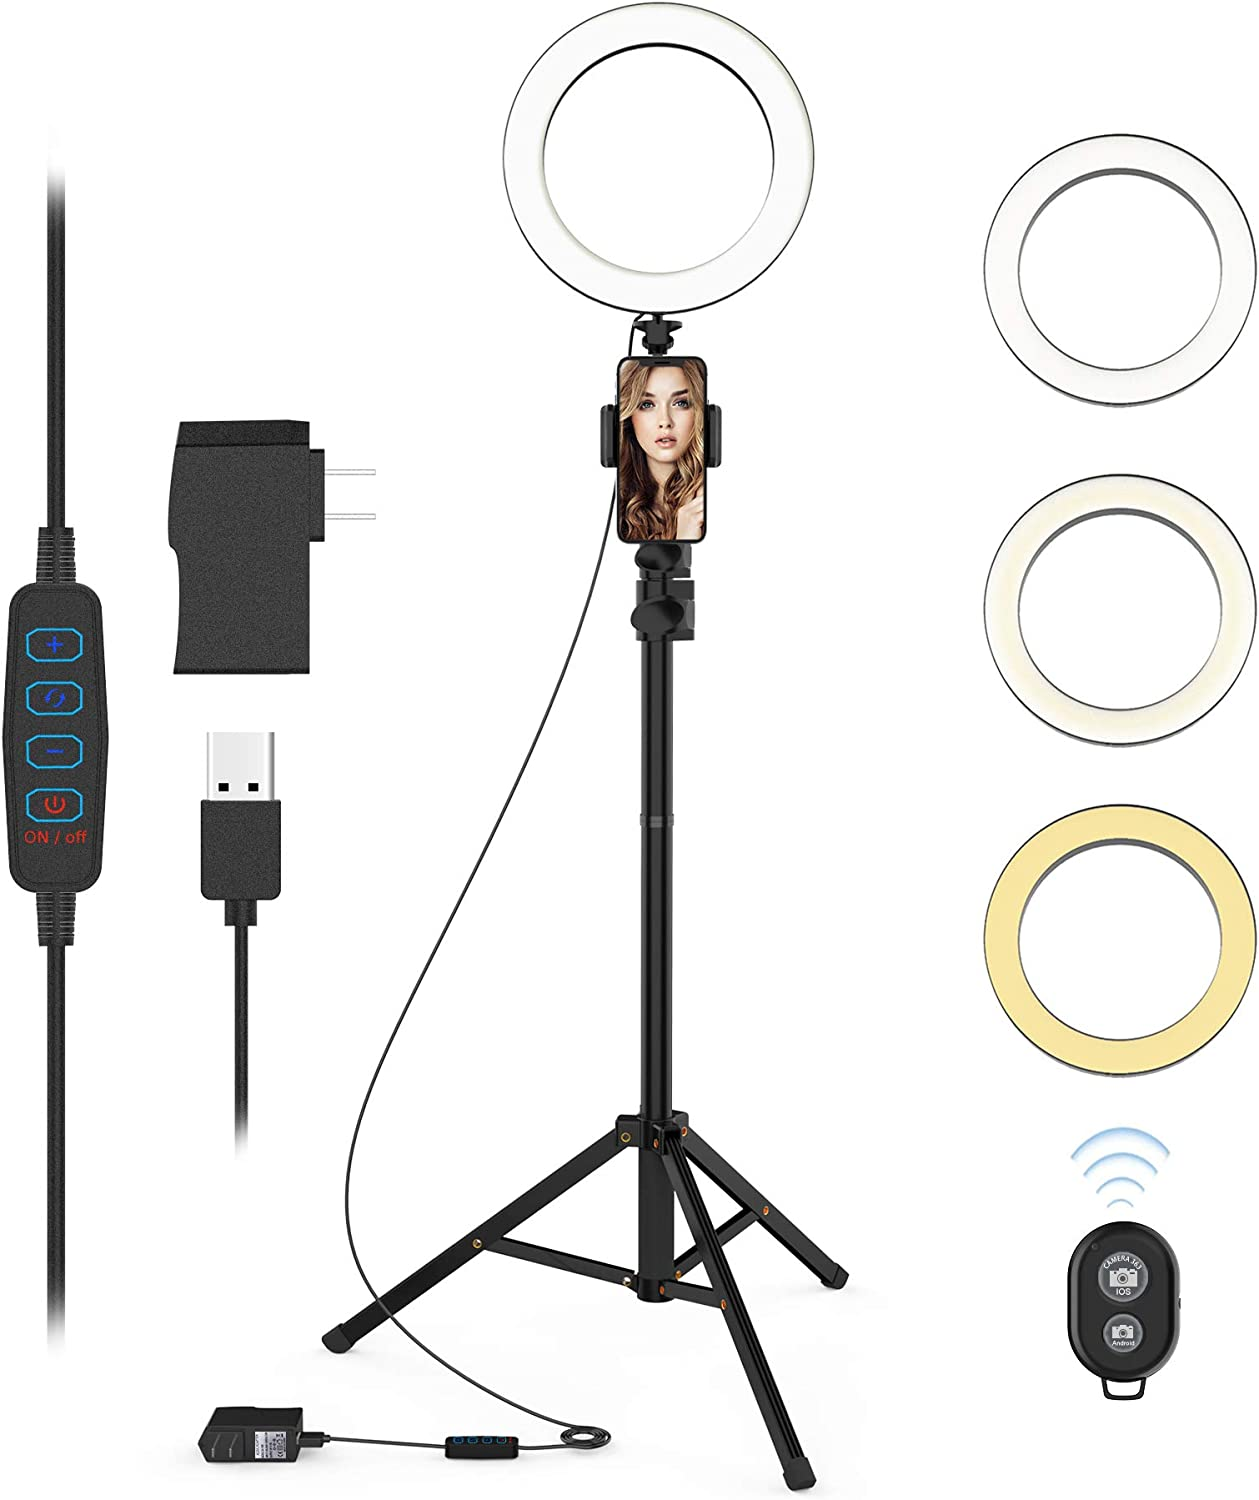 Circle Lighting Ringlights for Makeup Video Photography Blogging Portrait